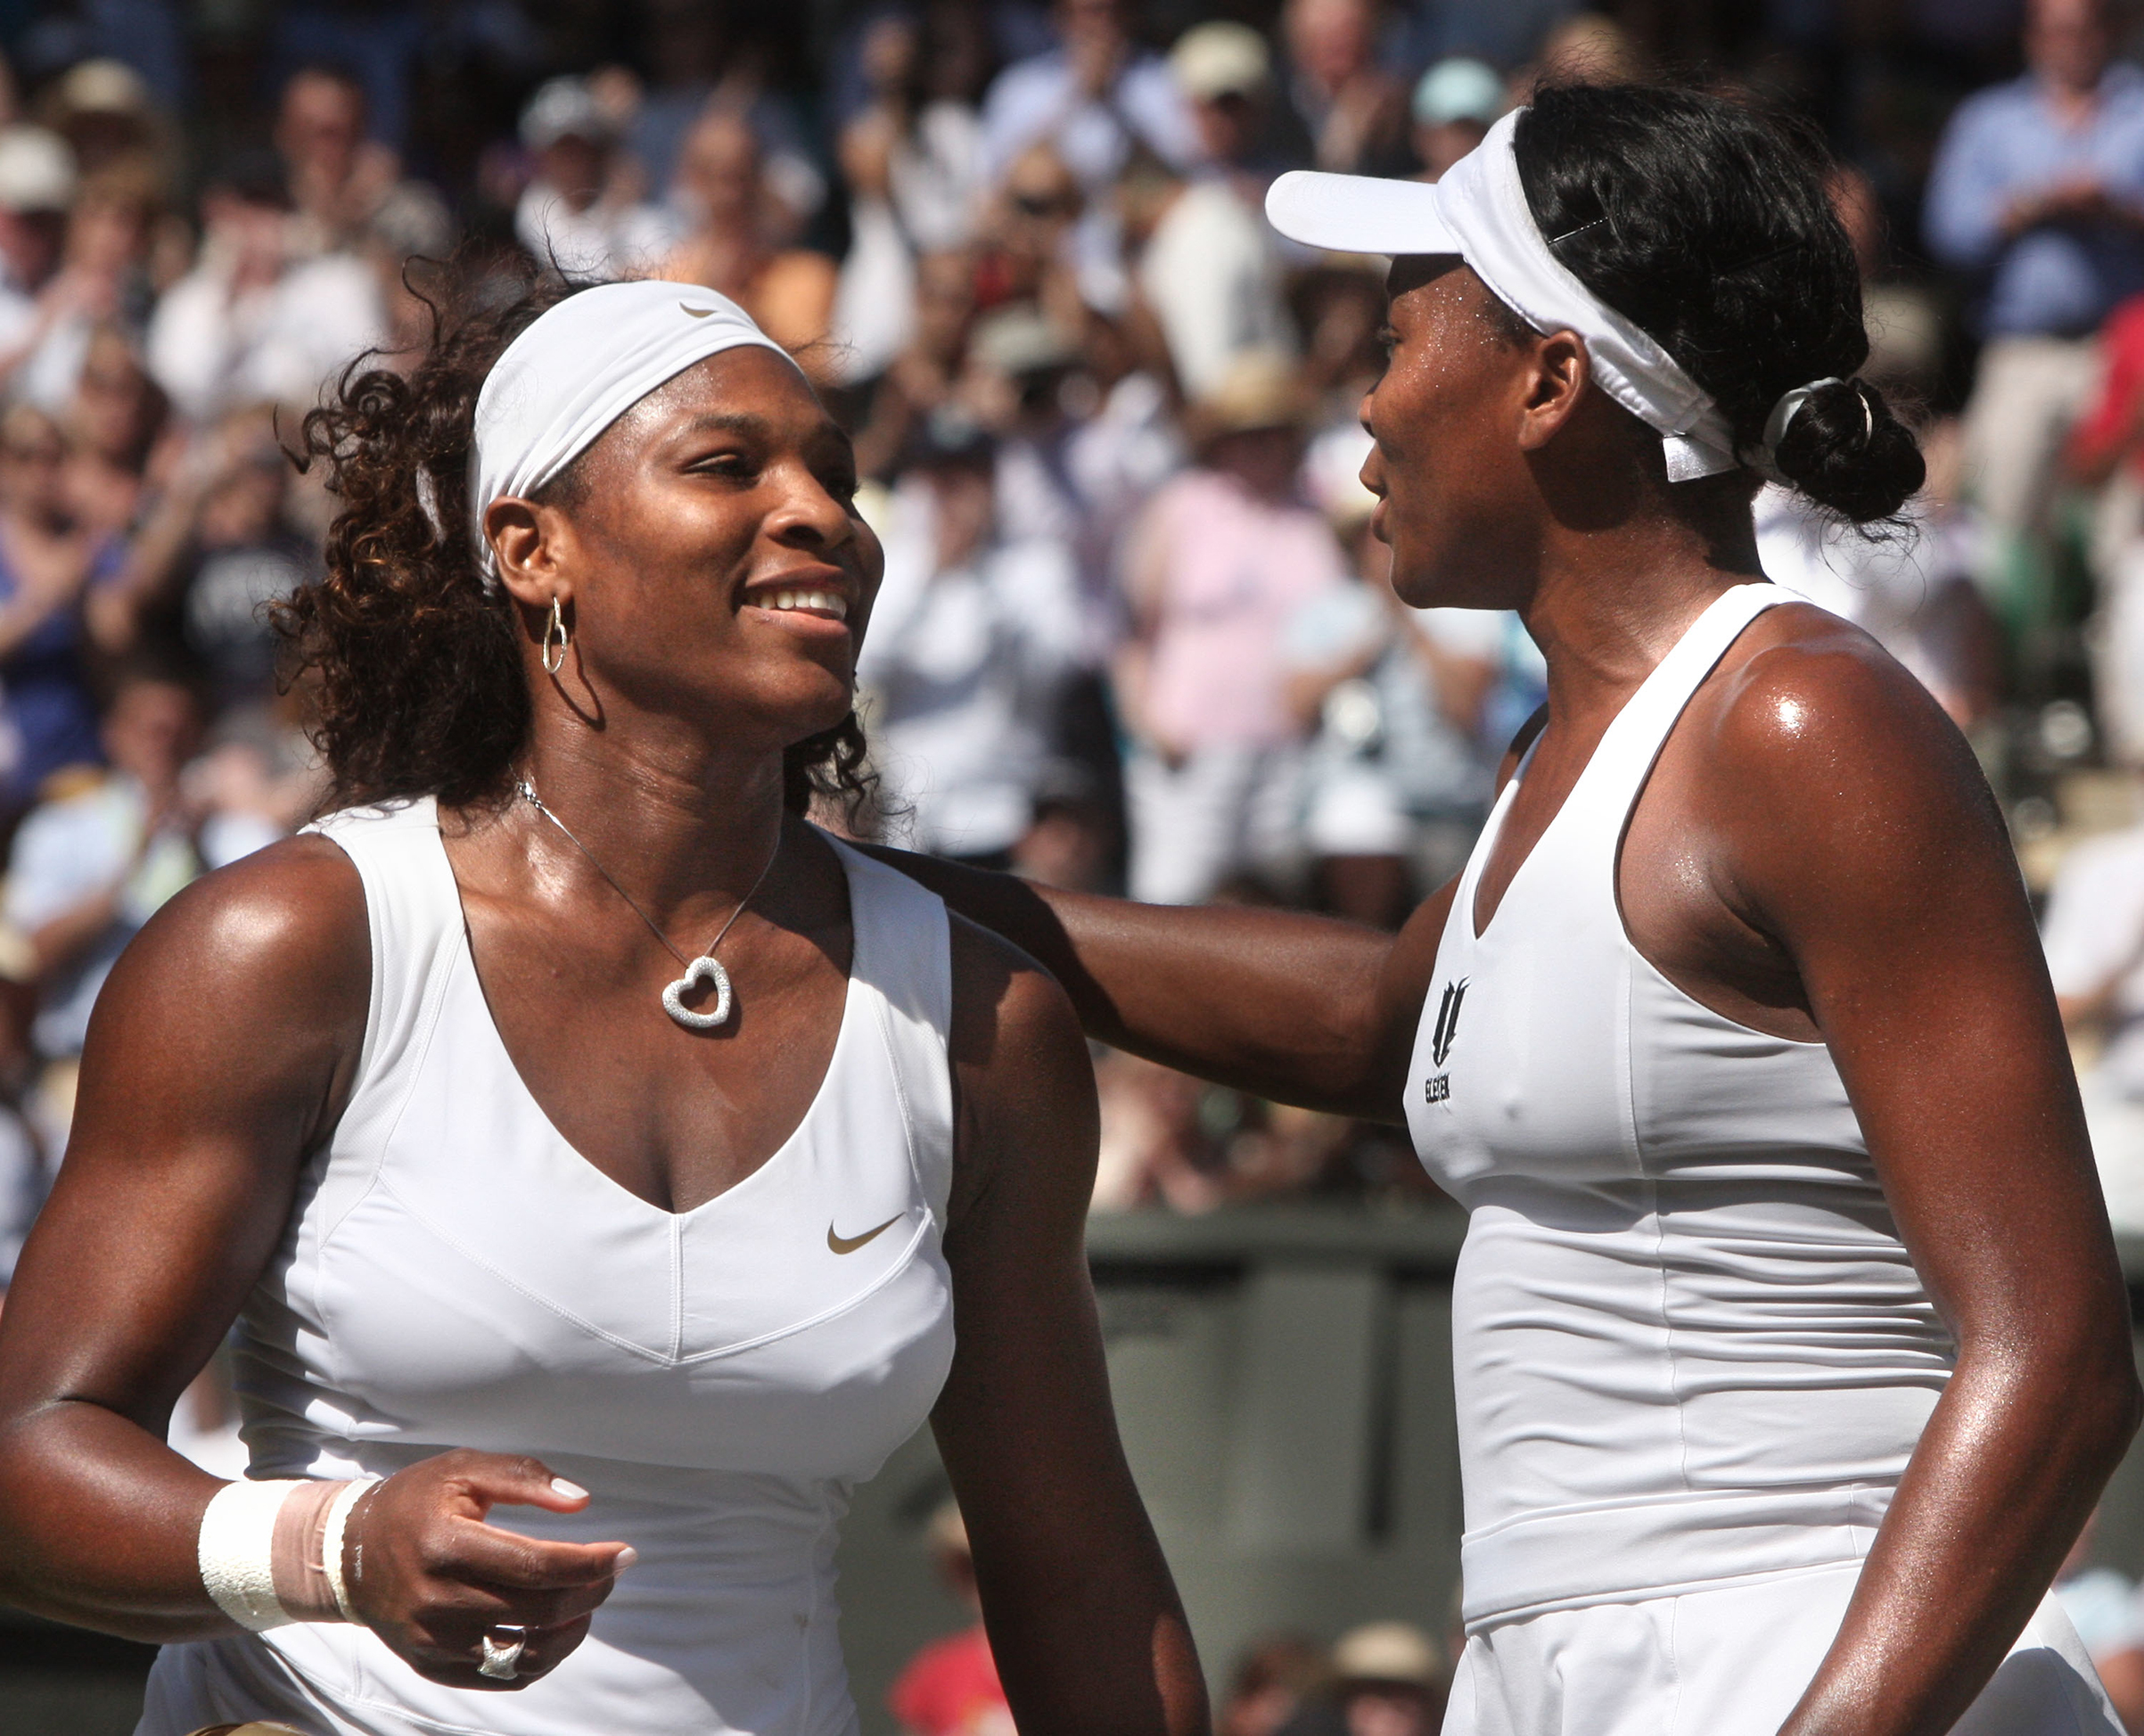 July 4, 2009 Serena Williams her sister Venus meet at the net after Serena defeated Venus 7-6, 6-2 in the final of the Wimbledon Championships at the All England Lawn Tennis Club, Wimbledon, England on Jul, 4 2009.